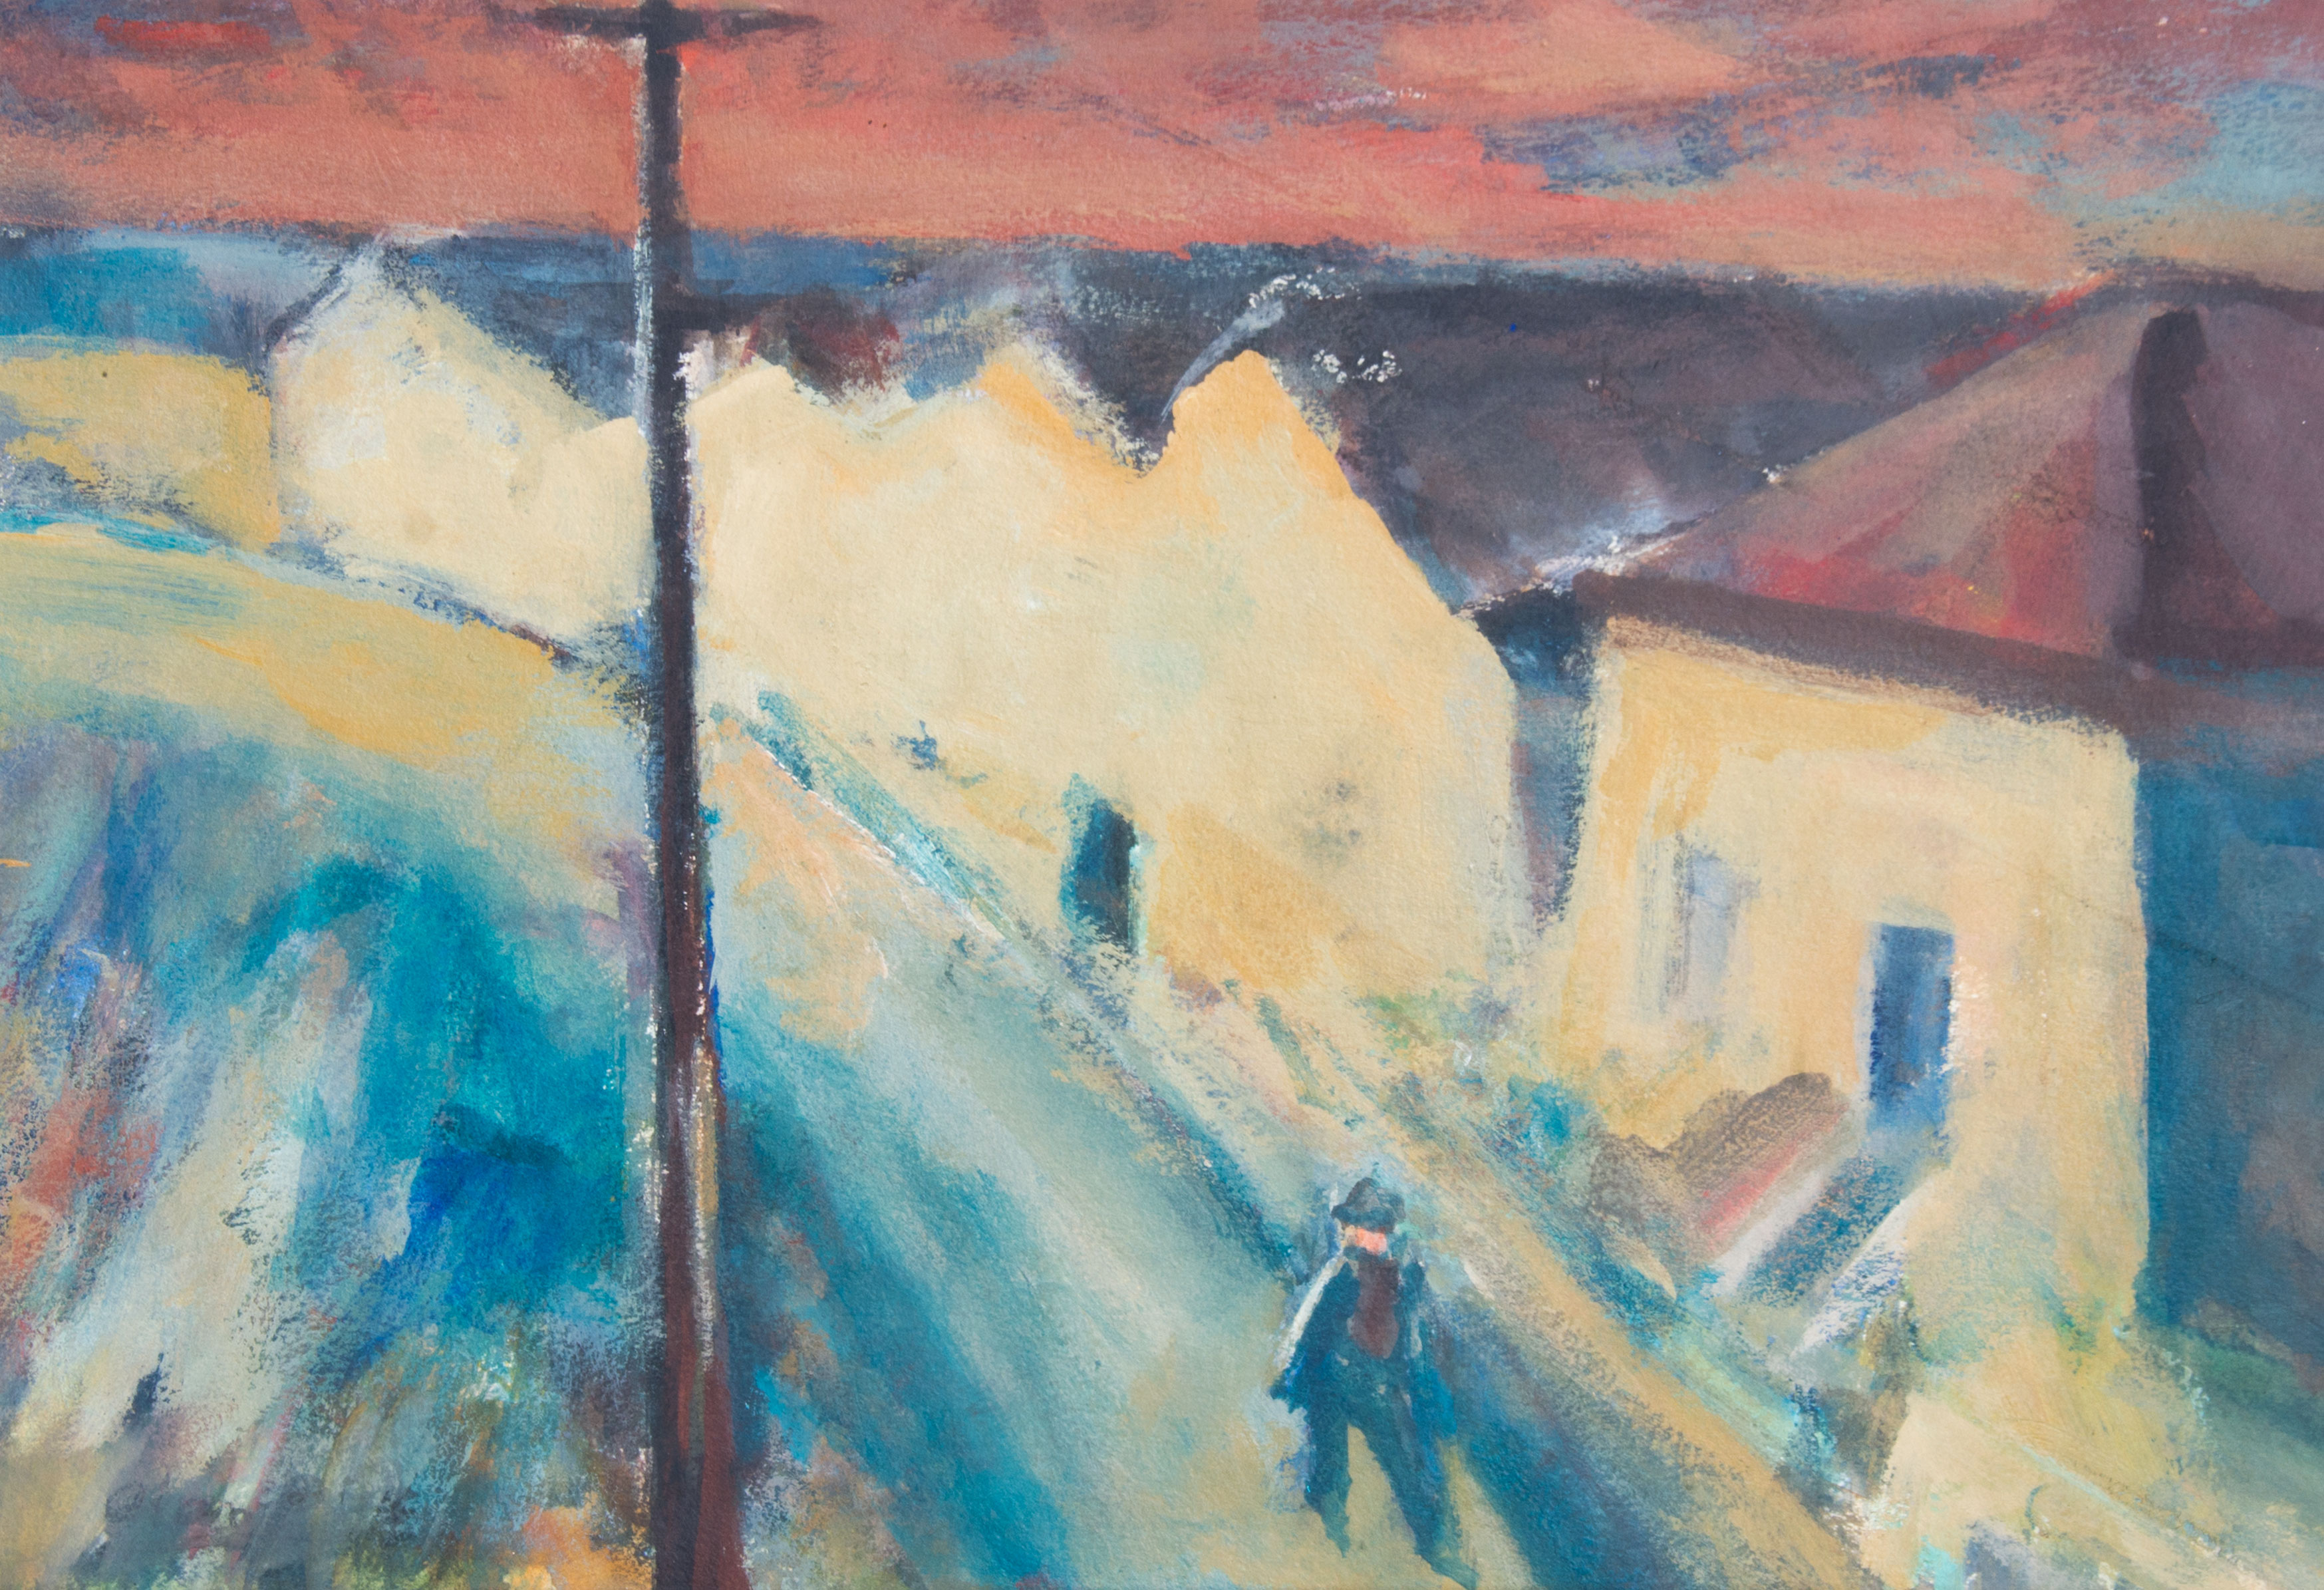 Alan Post, Spanish Village, c. 1980